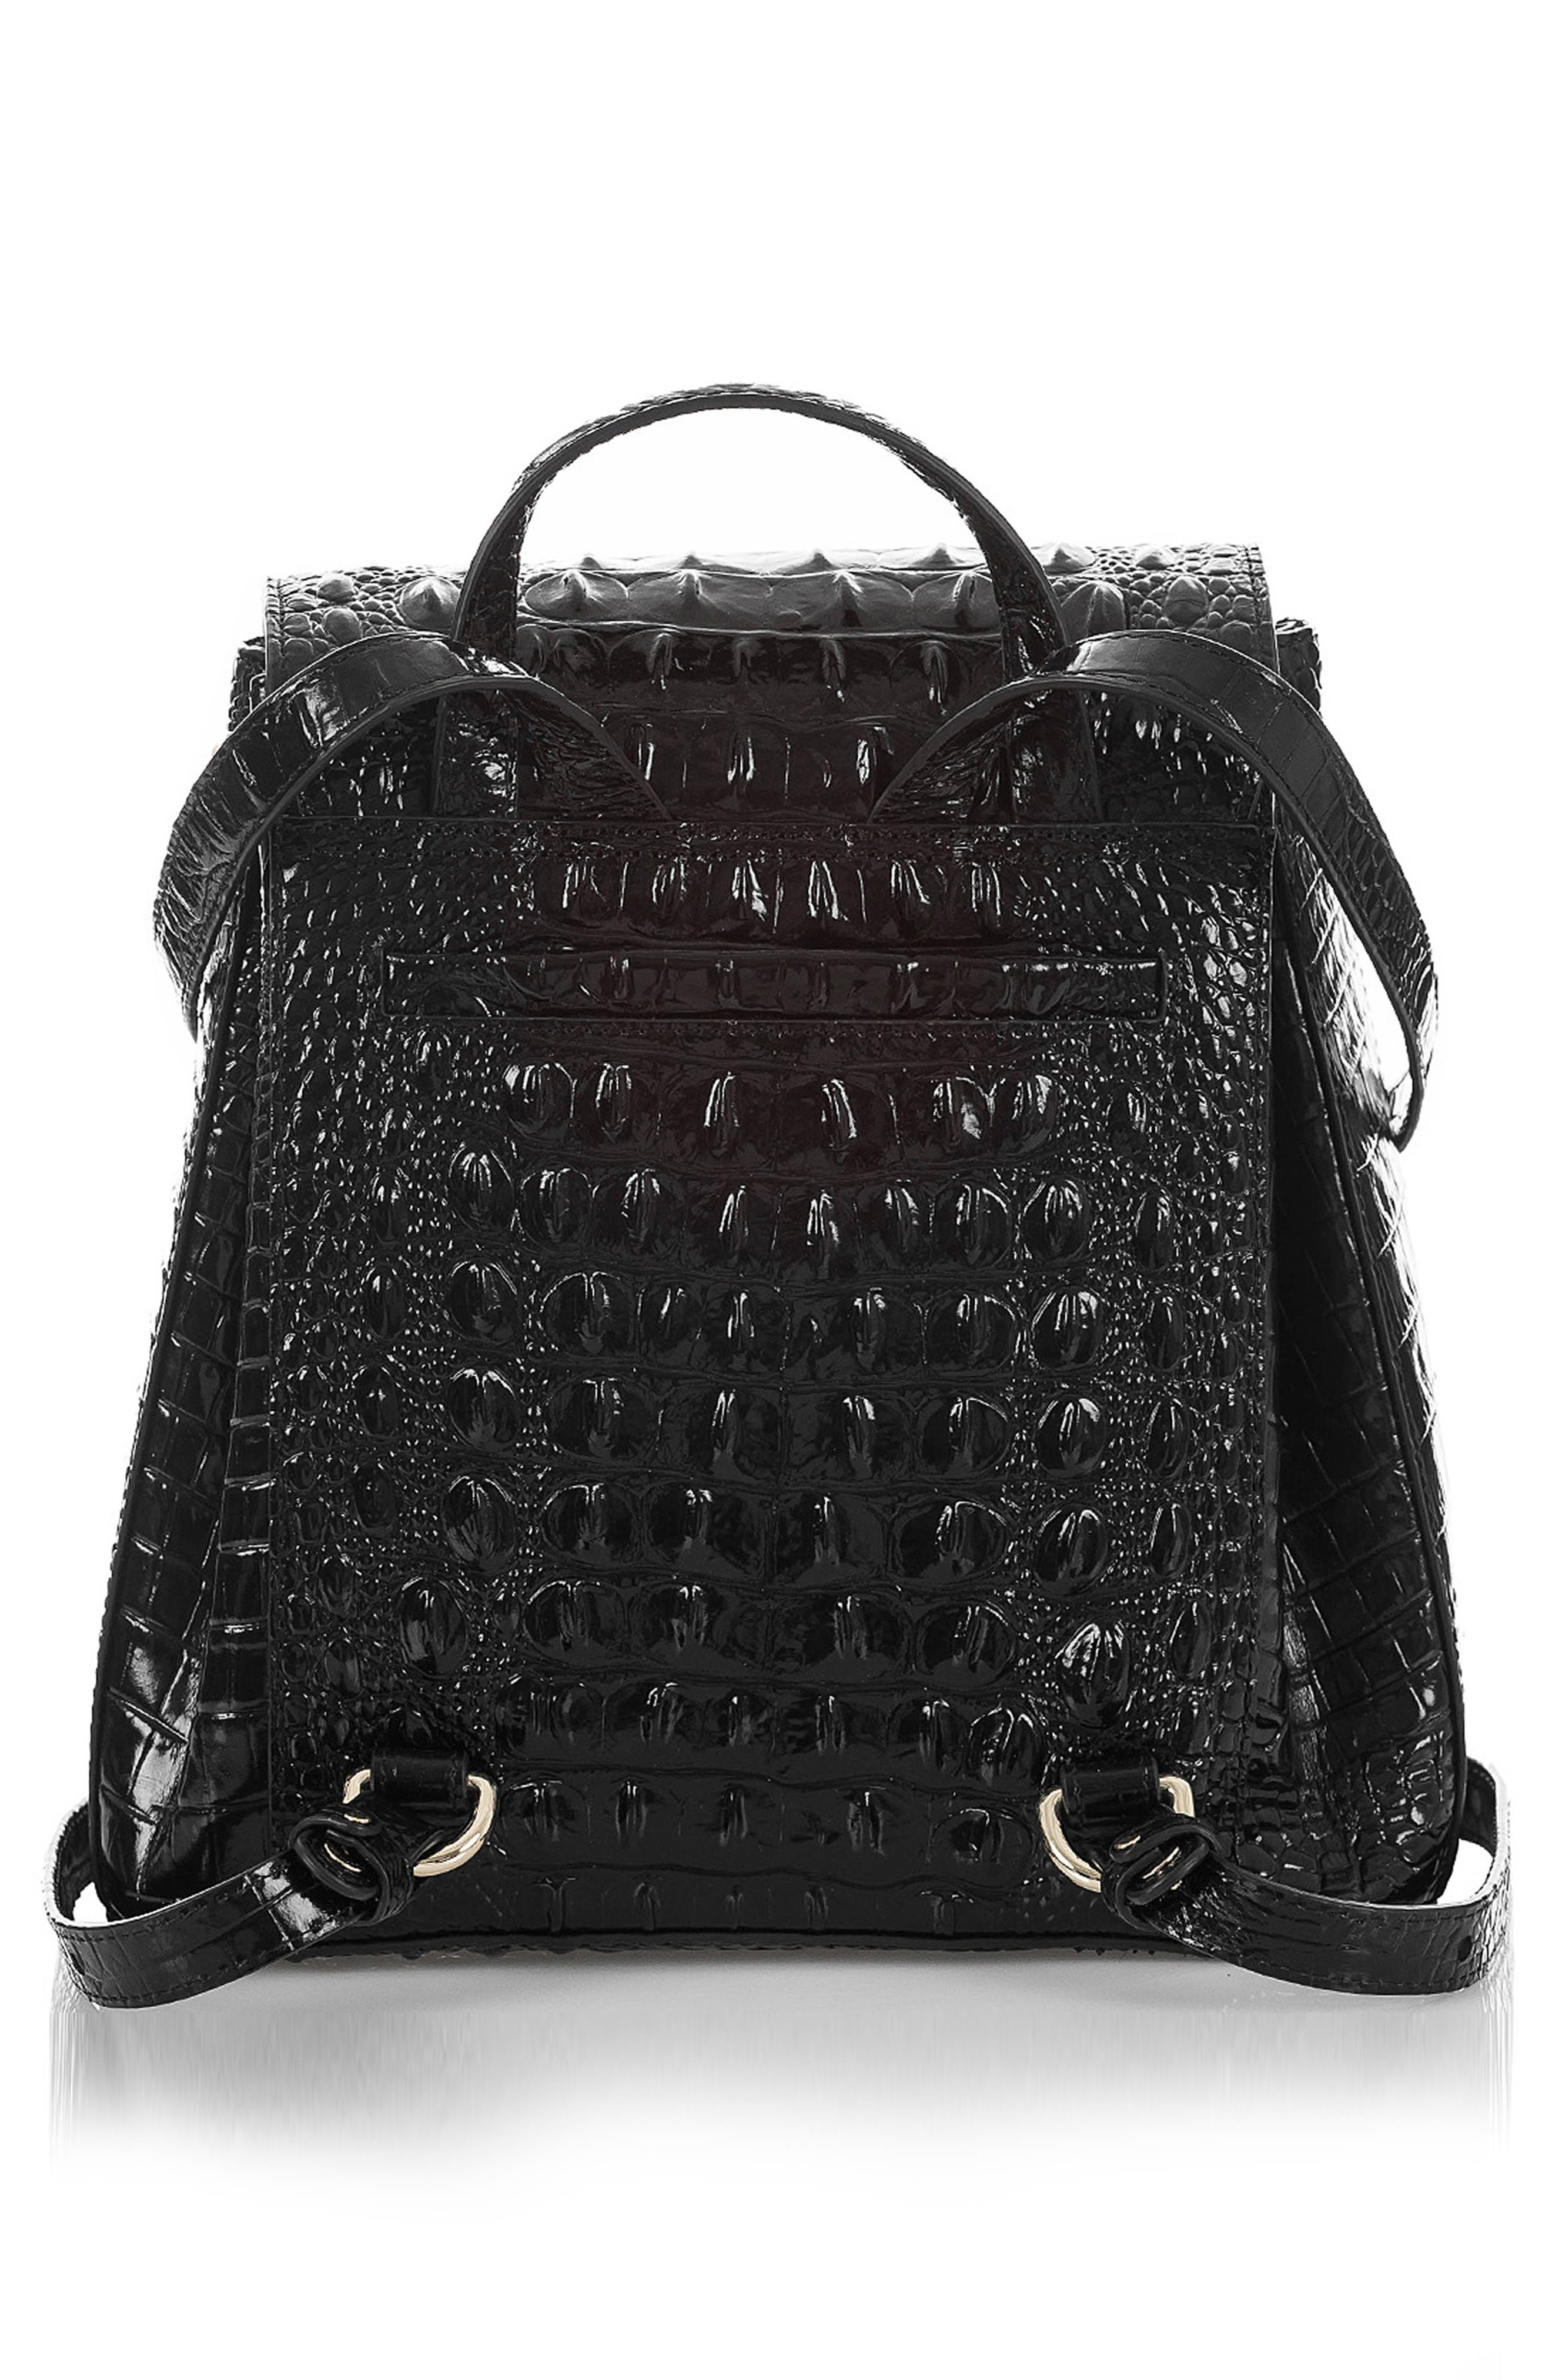 BRAHMIN, Margo Croc Embossed Leather Backpack, Alternate thumbnail 2, color, BLACK MELBOURNE